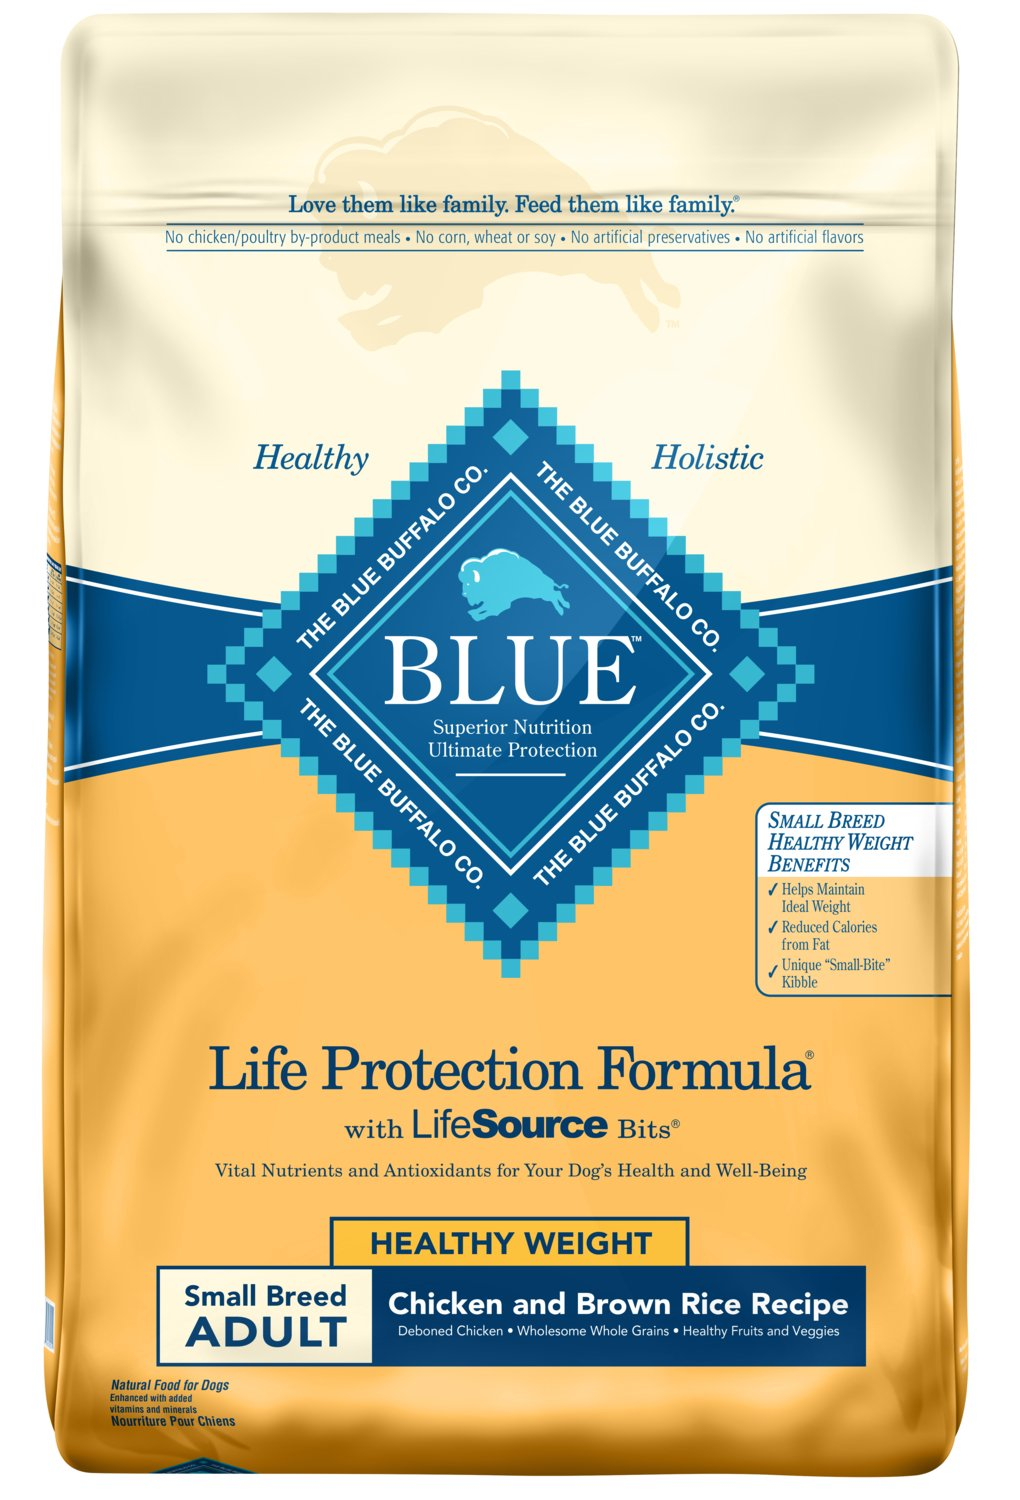 Blue Buffalo Life Protection Formula Healthy Weight Small Breed Dog Food Natural Dry Dog Food for Adult Dogs Chicken and Brown Rice 15 lb. Bag